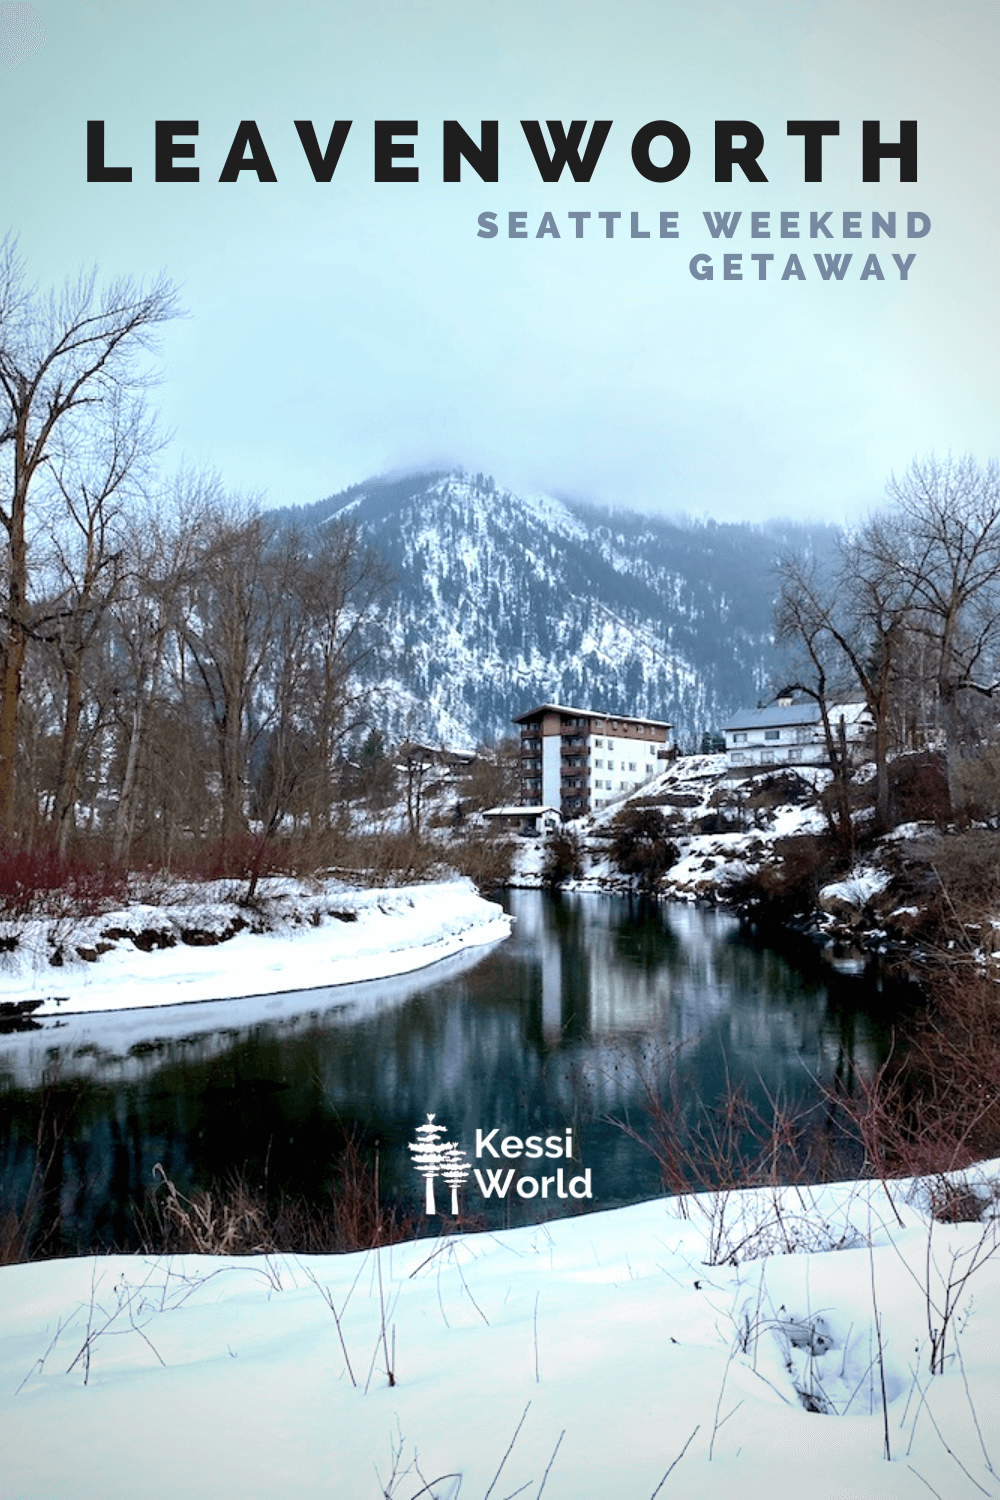 A Pinterest pin showing the Bavarian themed town of Leavenworth in a Winter scene along the Wenatchee River.  There is snow in the hills above a collection of homes and hotels in German style.